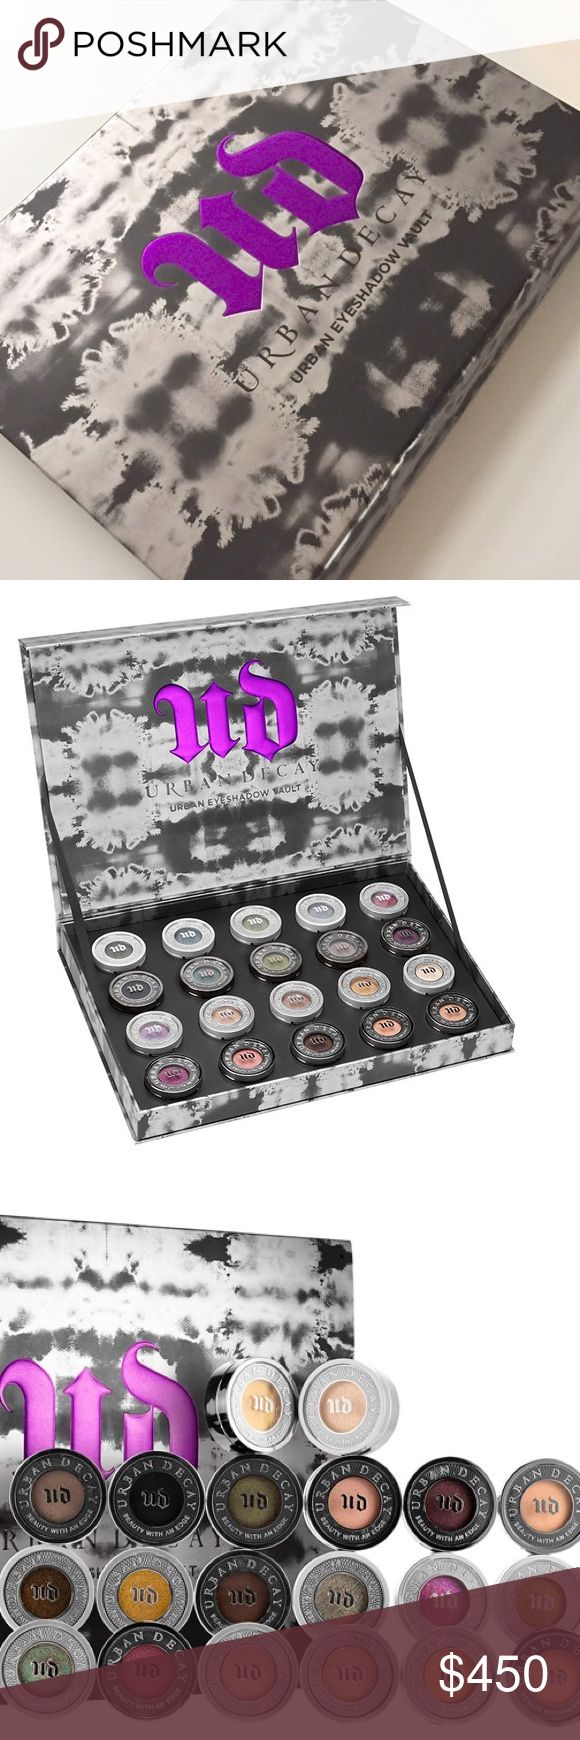 Urban Decay Moondust Eyeshadow Vault BNIB BNIB Urban Decay Eyeshadow Vault! Sold out everywhere! Vault includes: - Moondust Eyeshadow in Scorpio, Zodiac, Vortex, Moonspoon, Shockwave, Solstice, Space Cowboy, Dark Force, Interstellar and Cosmic. - Eyeshadow in Blackout, Lounge, Mildew, Mushroom, Rockstar, Last Call, Scratch, Busted, X and Sellout.                                                           Selling only as set OR $15 each. If buying multiples I can bundle for a better deal. Free…